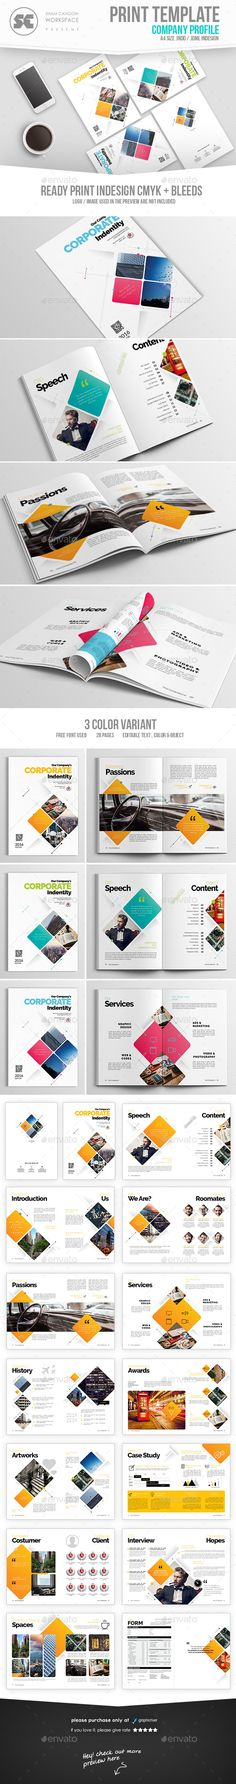 ProBiz u2013 Business and Corporate Annual Report Template InDesign - company report template